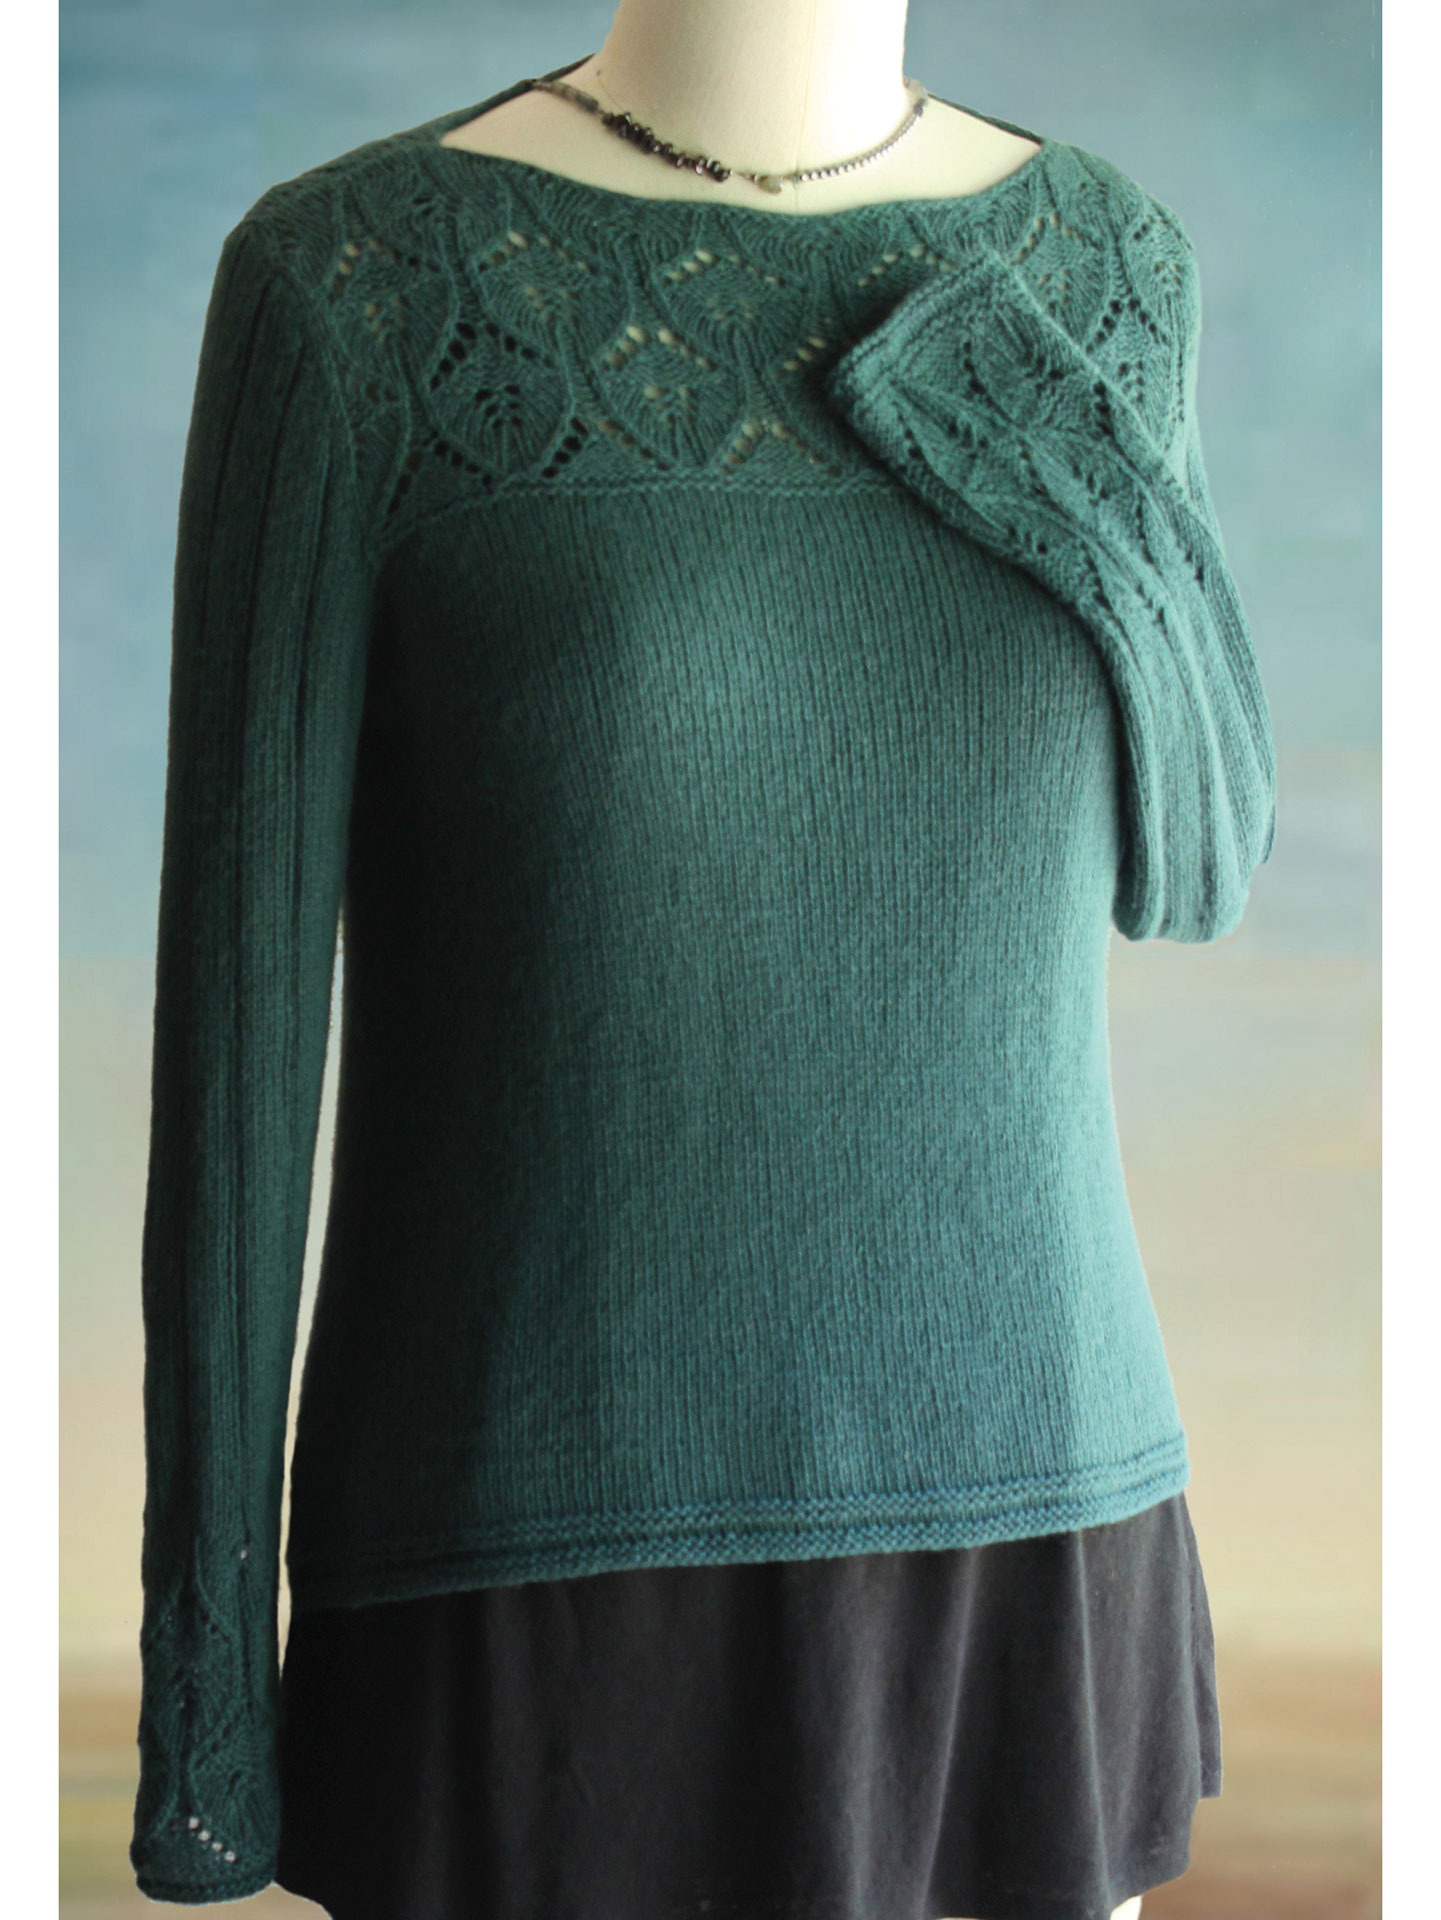 Top-Down Knitting Patterns - Page 1